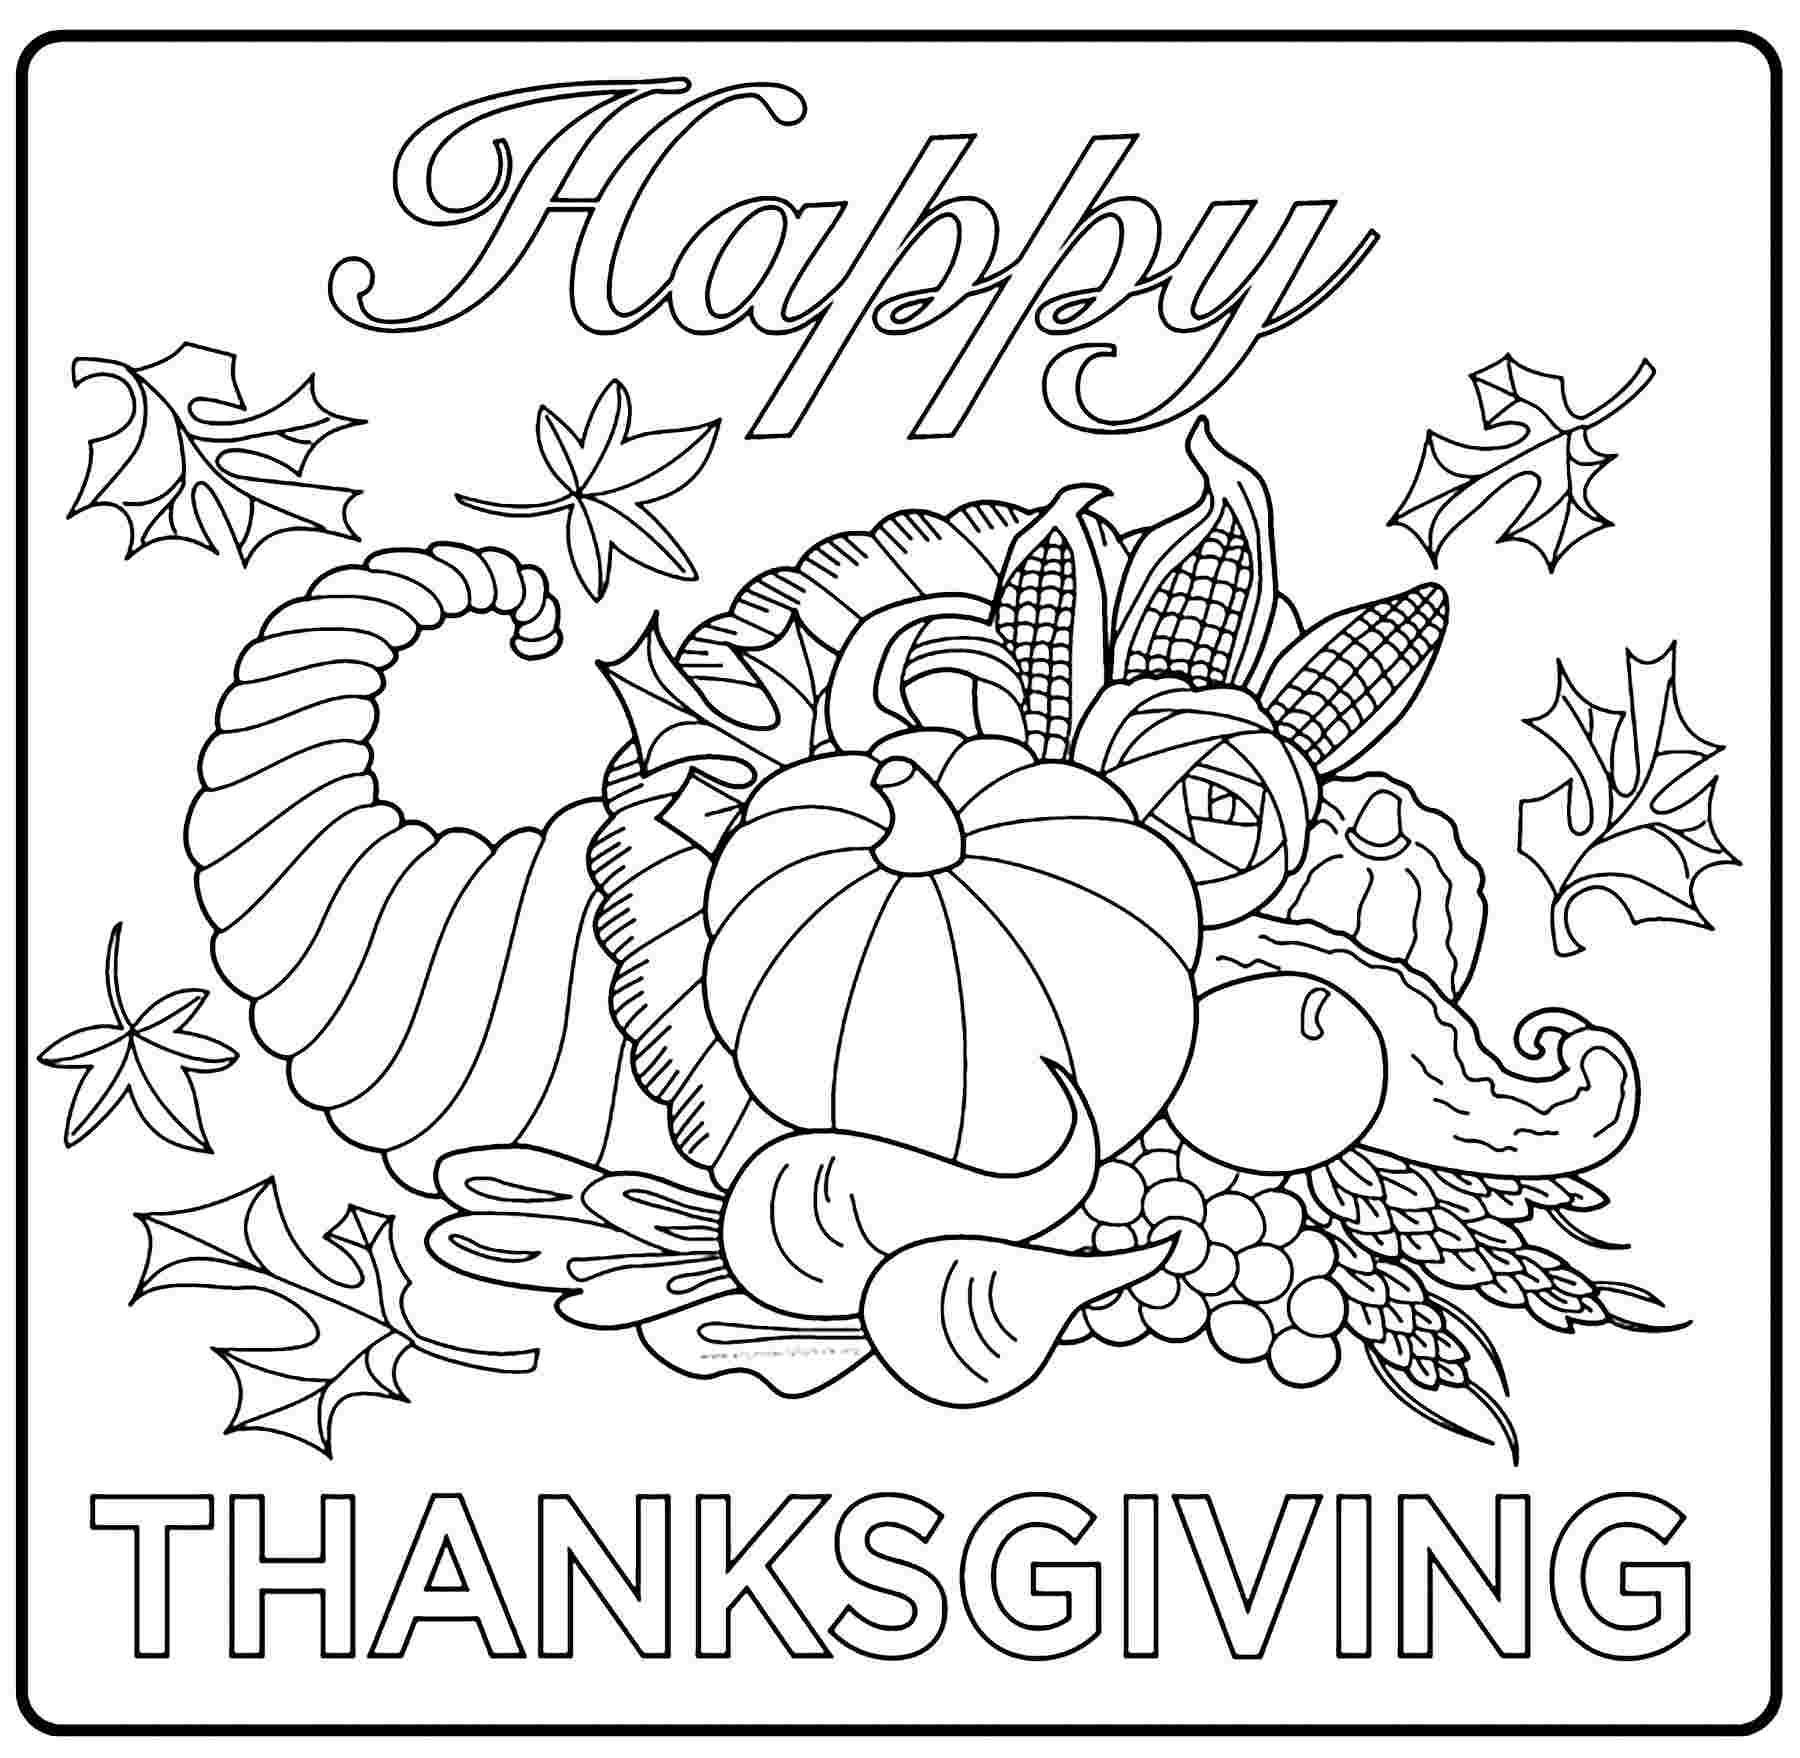 Thanksgiving Coloring Page Freebie For The Kids While We Get